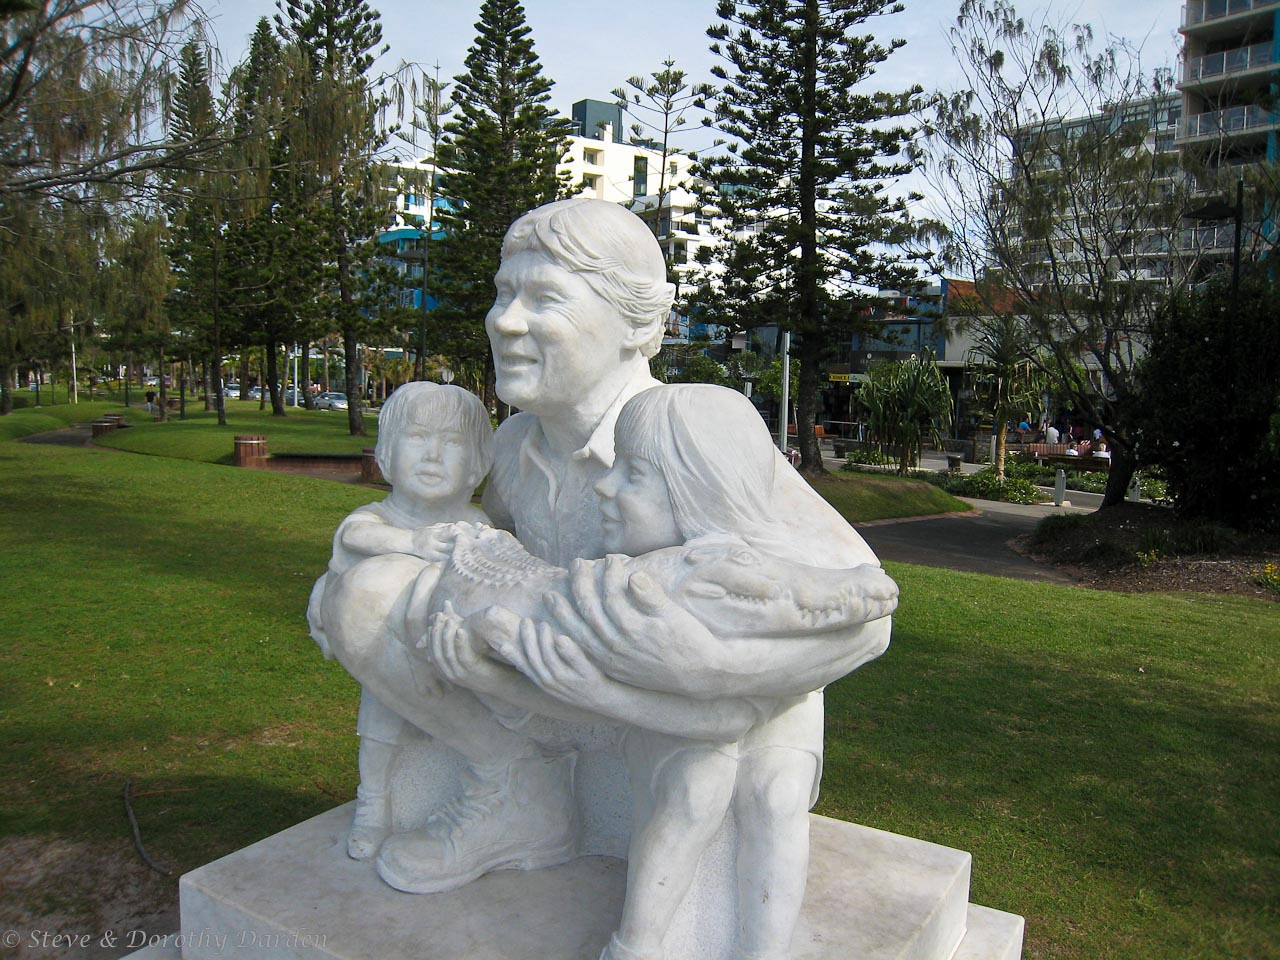 Memorial sculpture for the late Steve Irwin, the Crocodile Hunter, and his two children. Mooloolaba was his home.